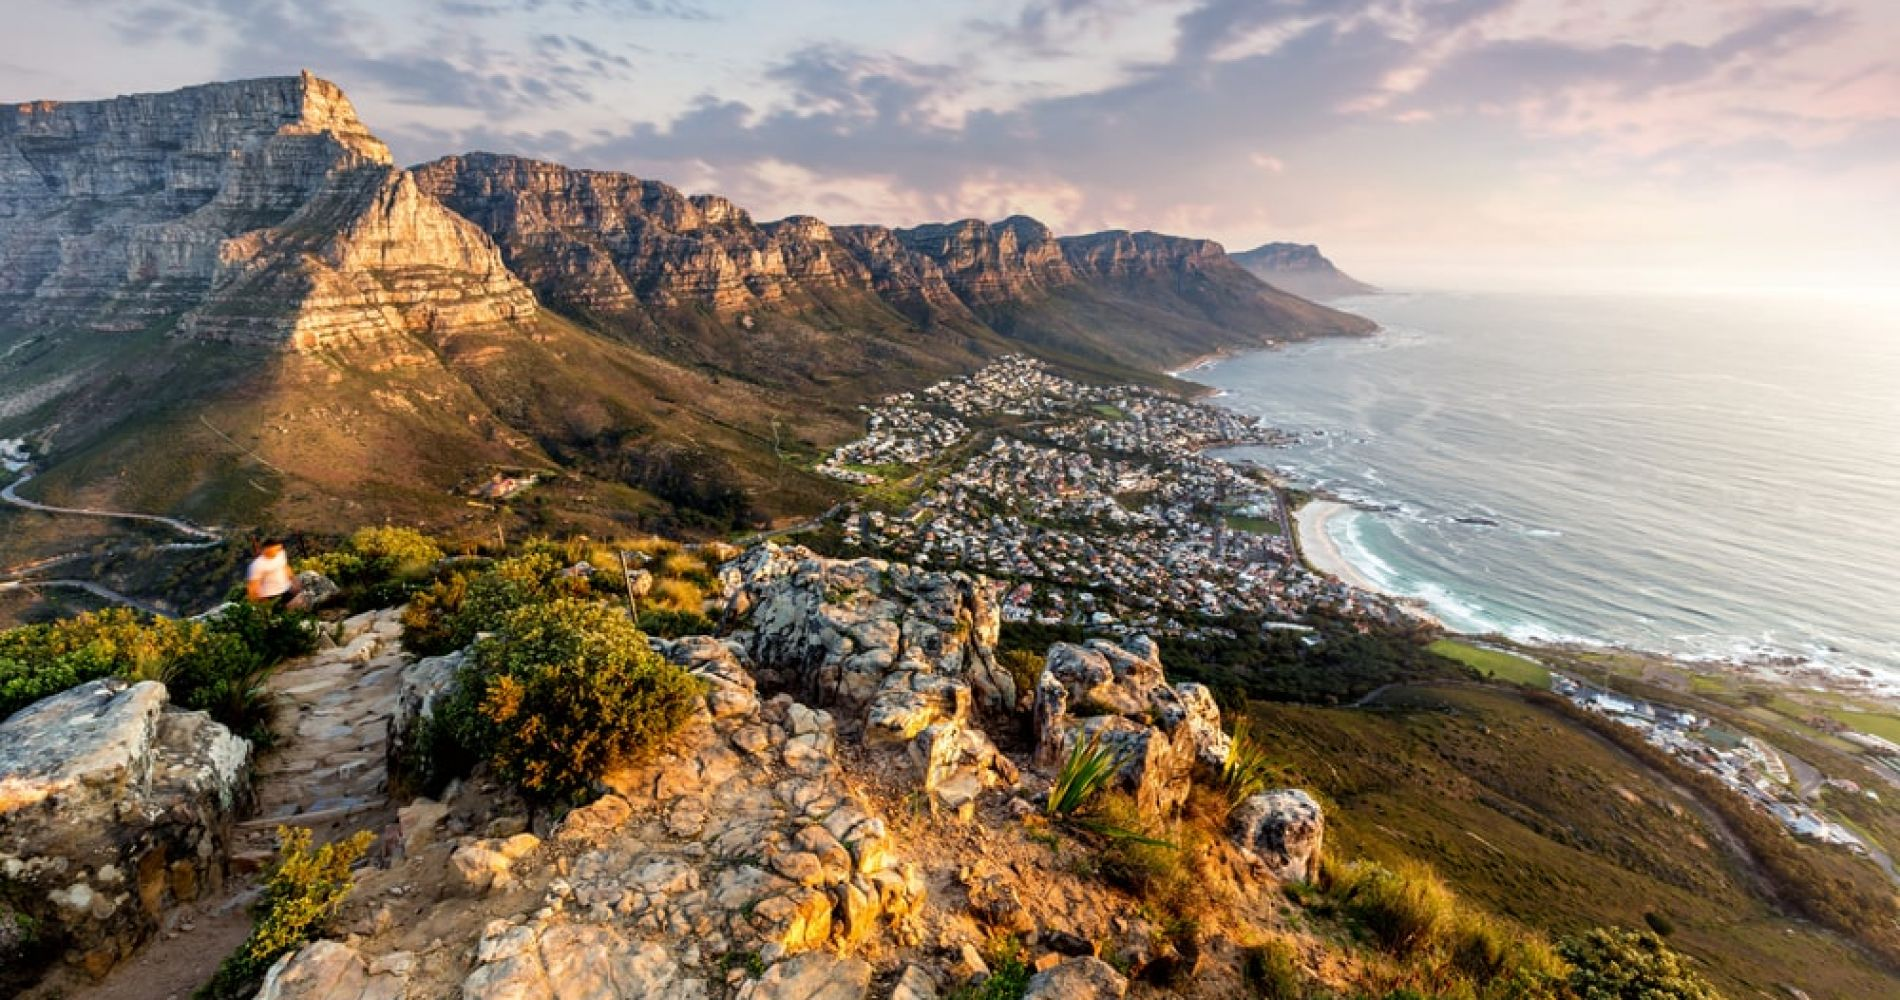 Hike the Table Mountain Range in Cape Town